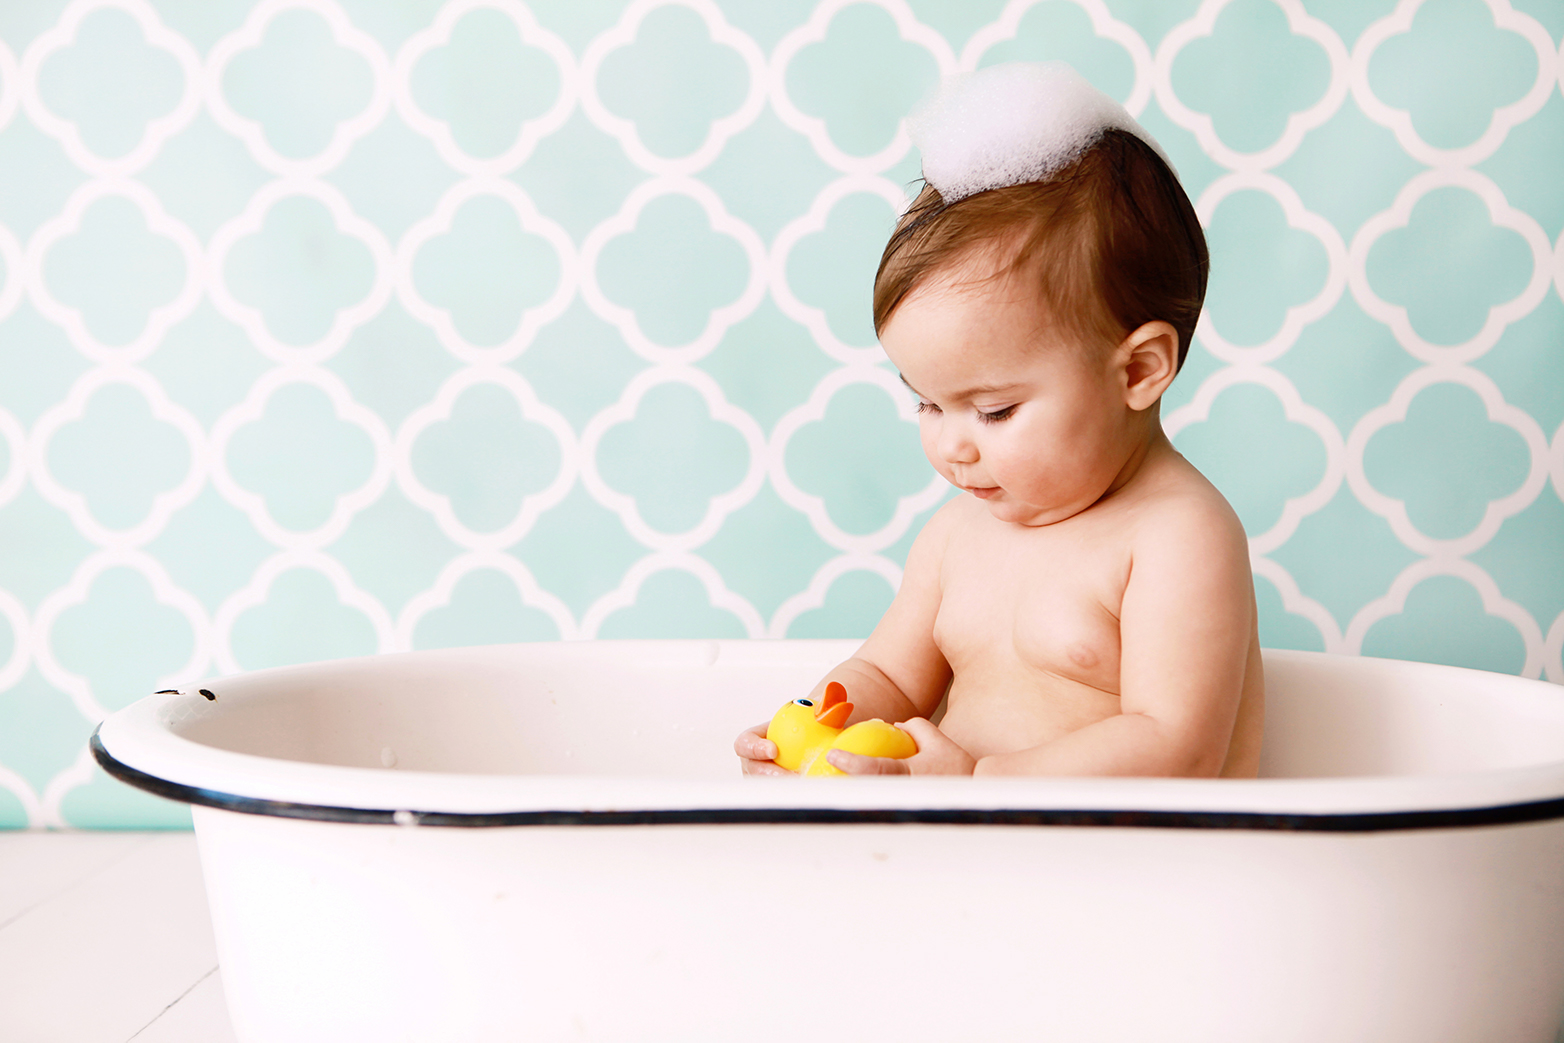 a baby in a small tub with a patterned wallpaper background